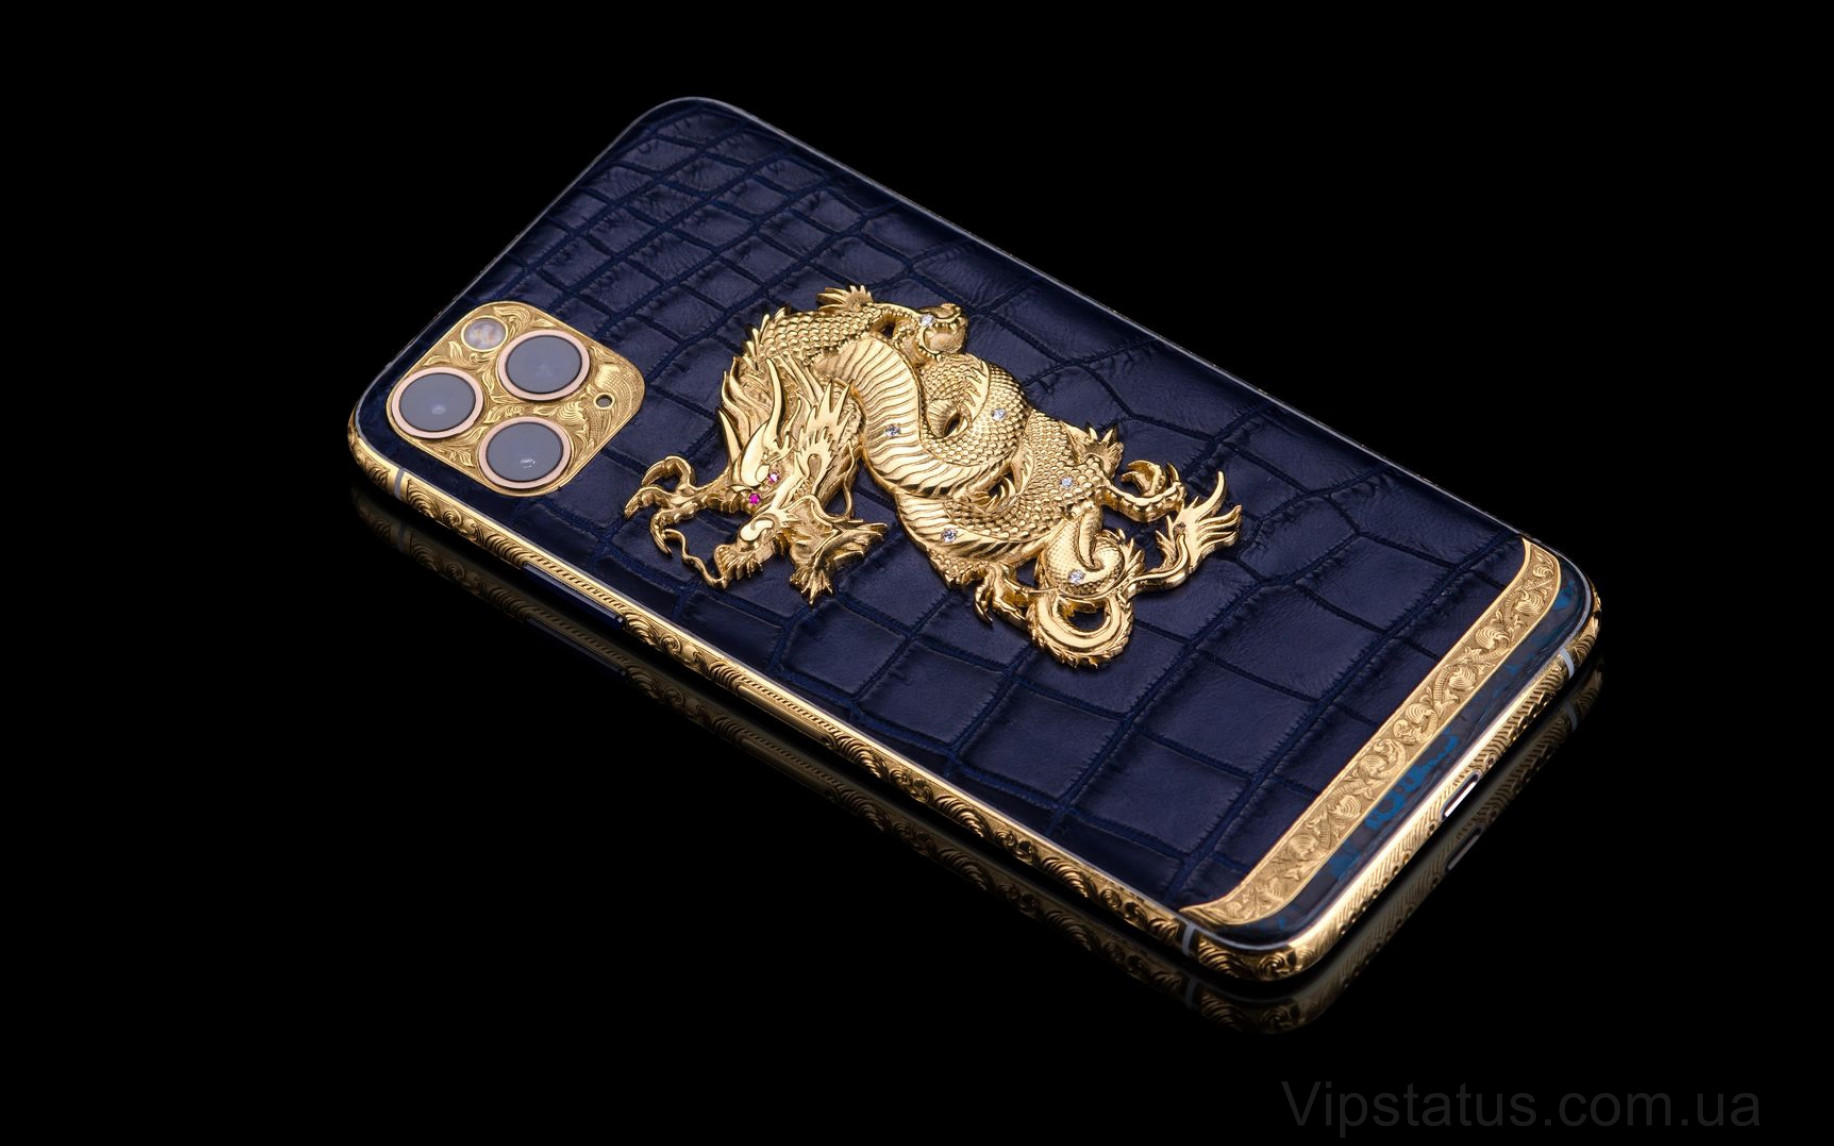 Elite Oriental Dragon IPHONE 12 PRO MAX 512 GB Oriental Dragon IPHONE 12 PRO MAX 512 GB image 3